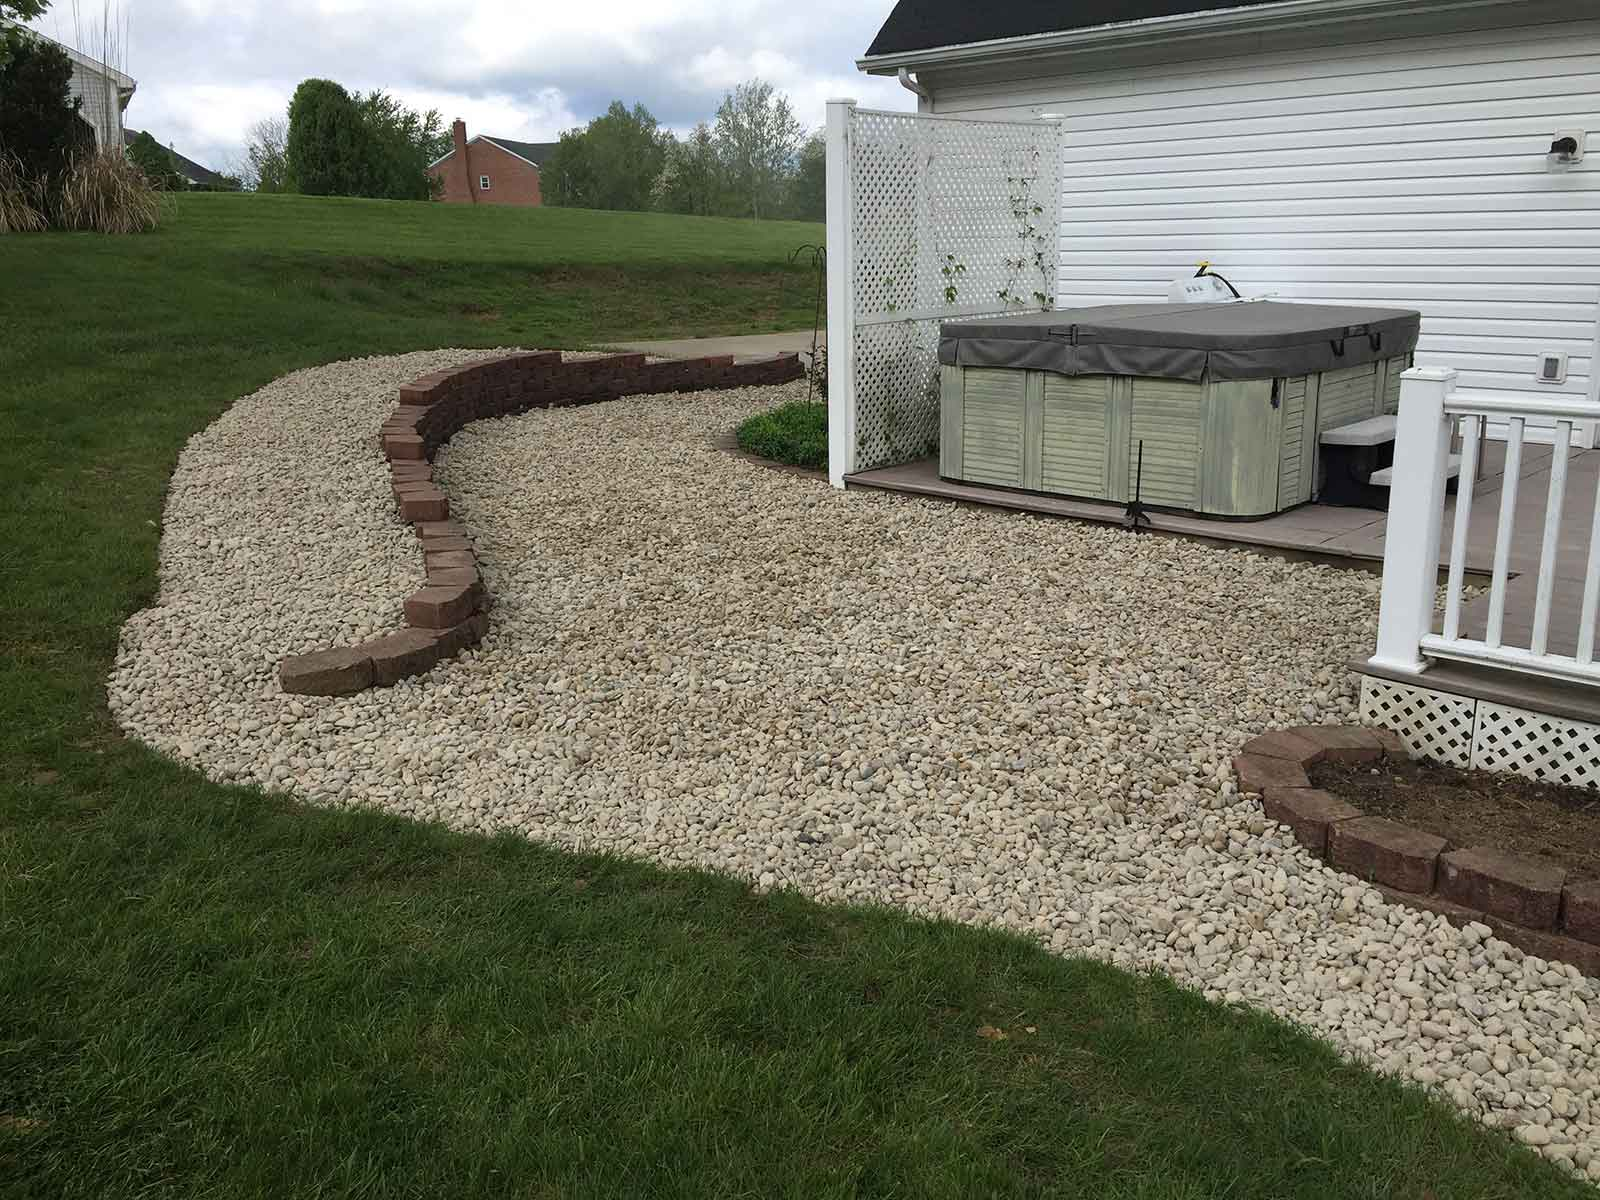 backyard landscaping with hot tub, retraining wall, and stone